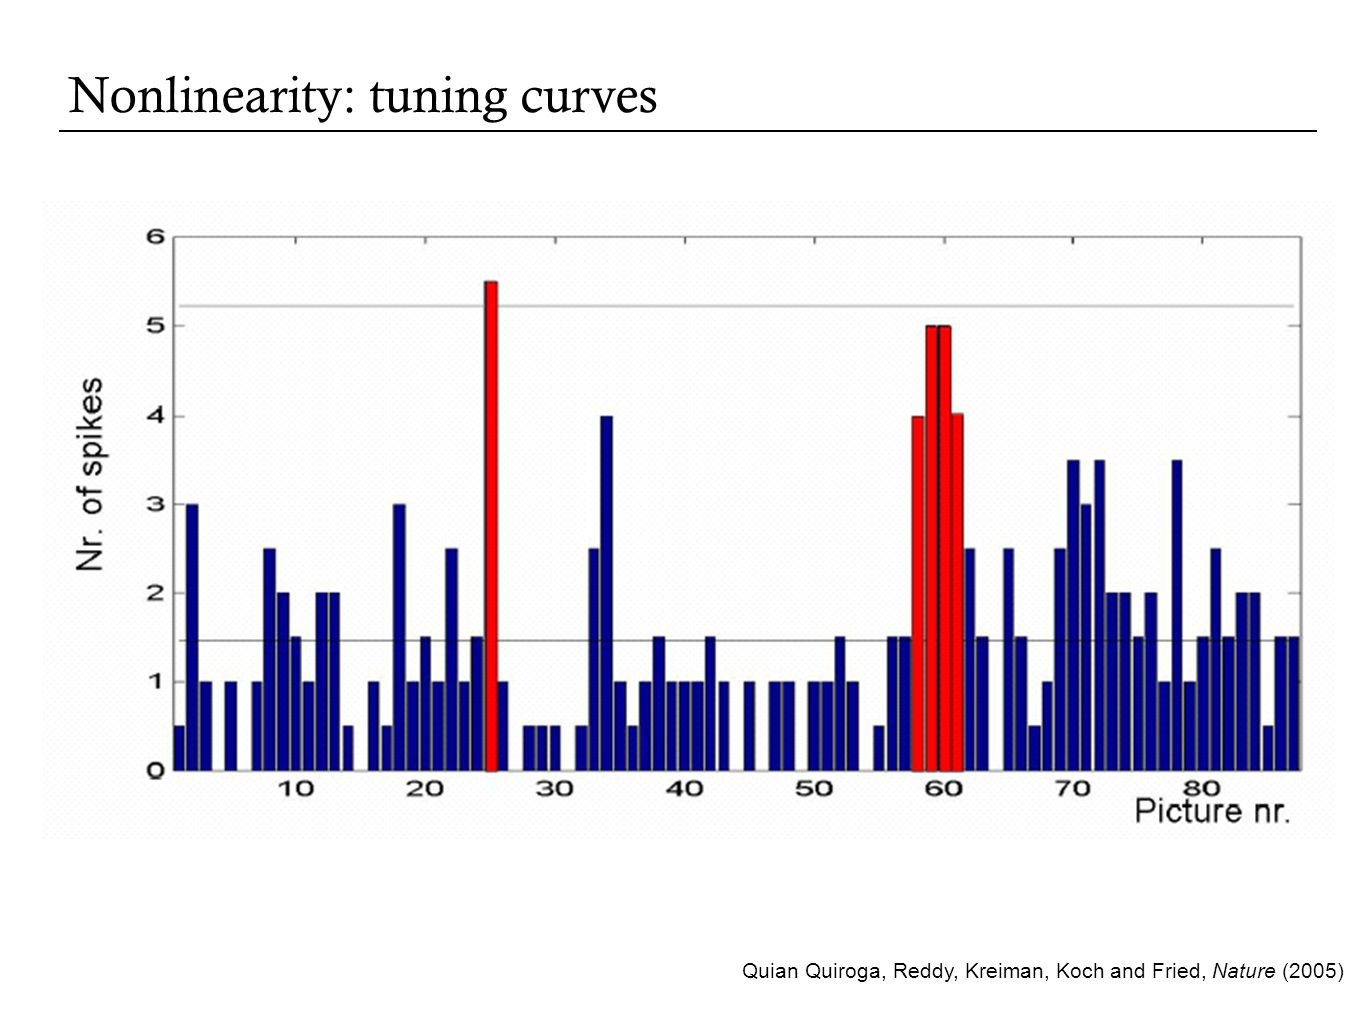 Nonlinearity: tuning curves Quian Quiroga, Reddy, Kreiman, Koch and Fried, Nature (2005)